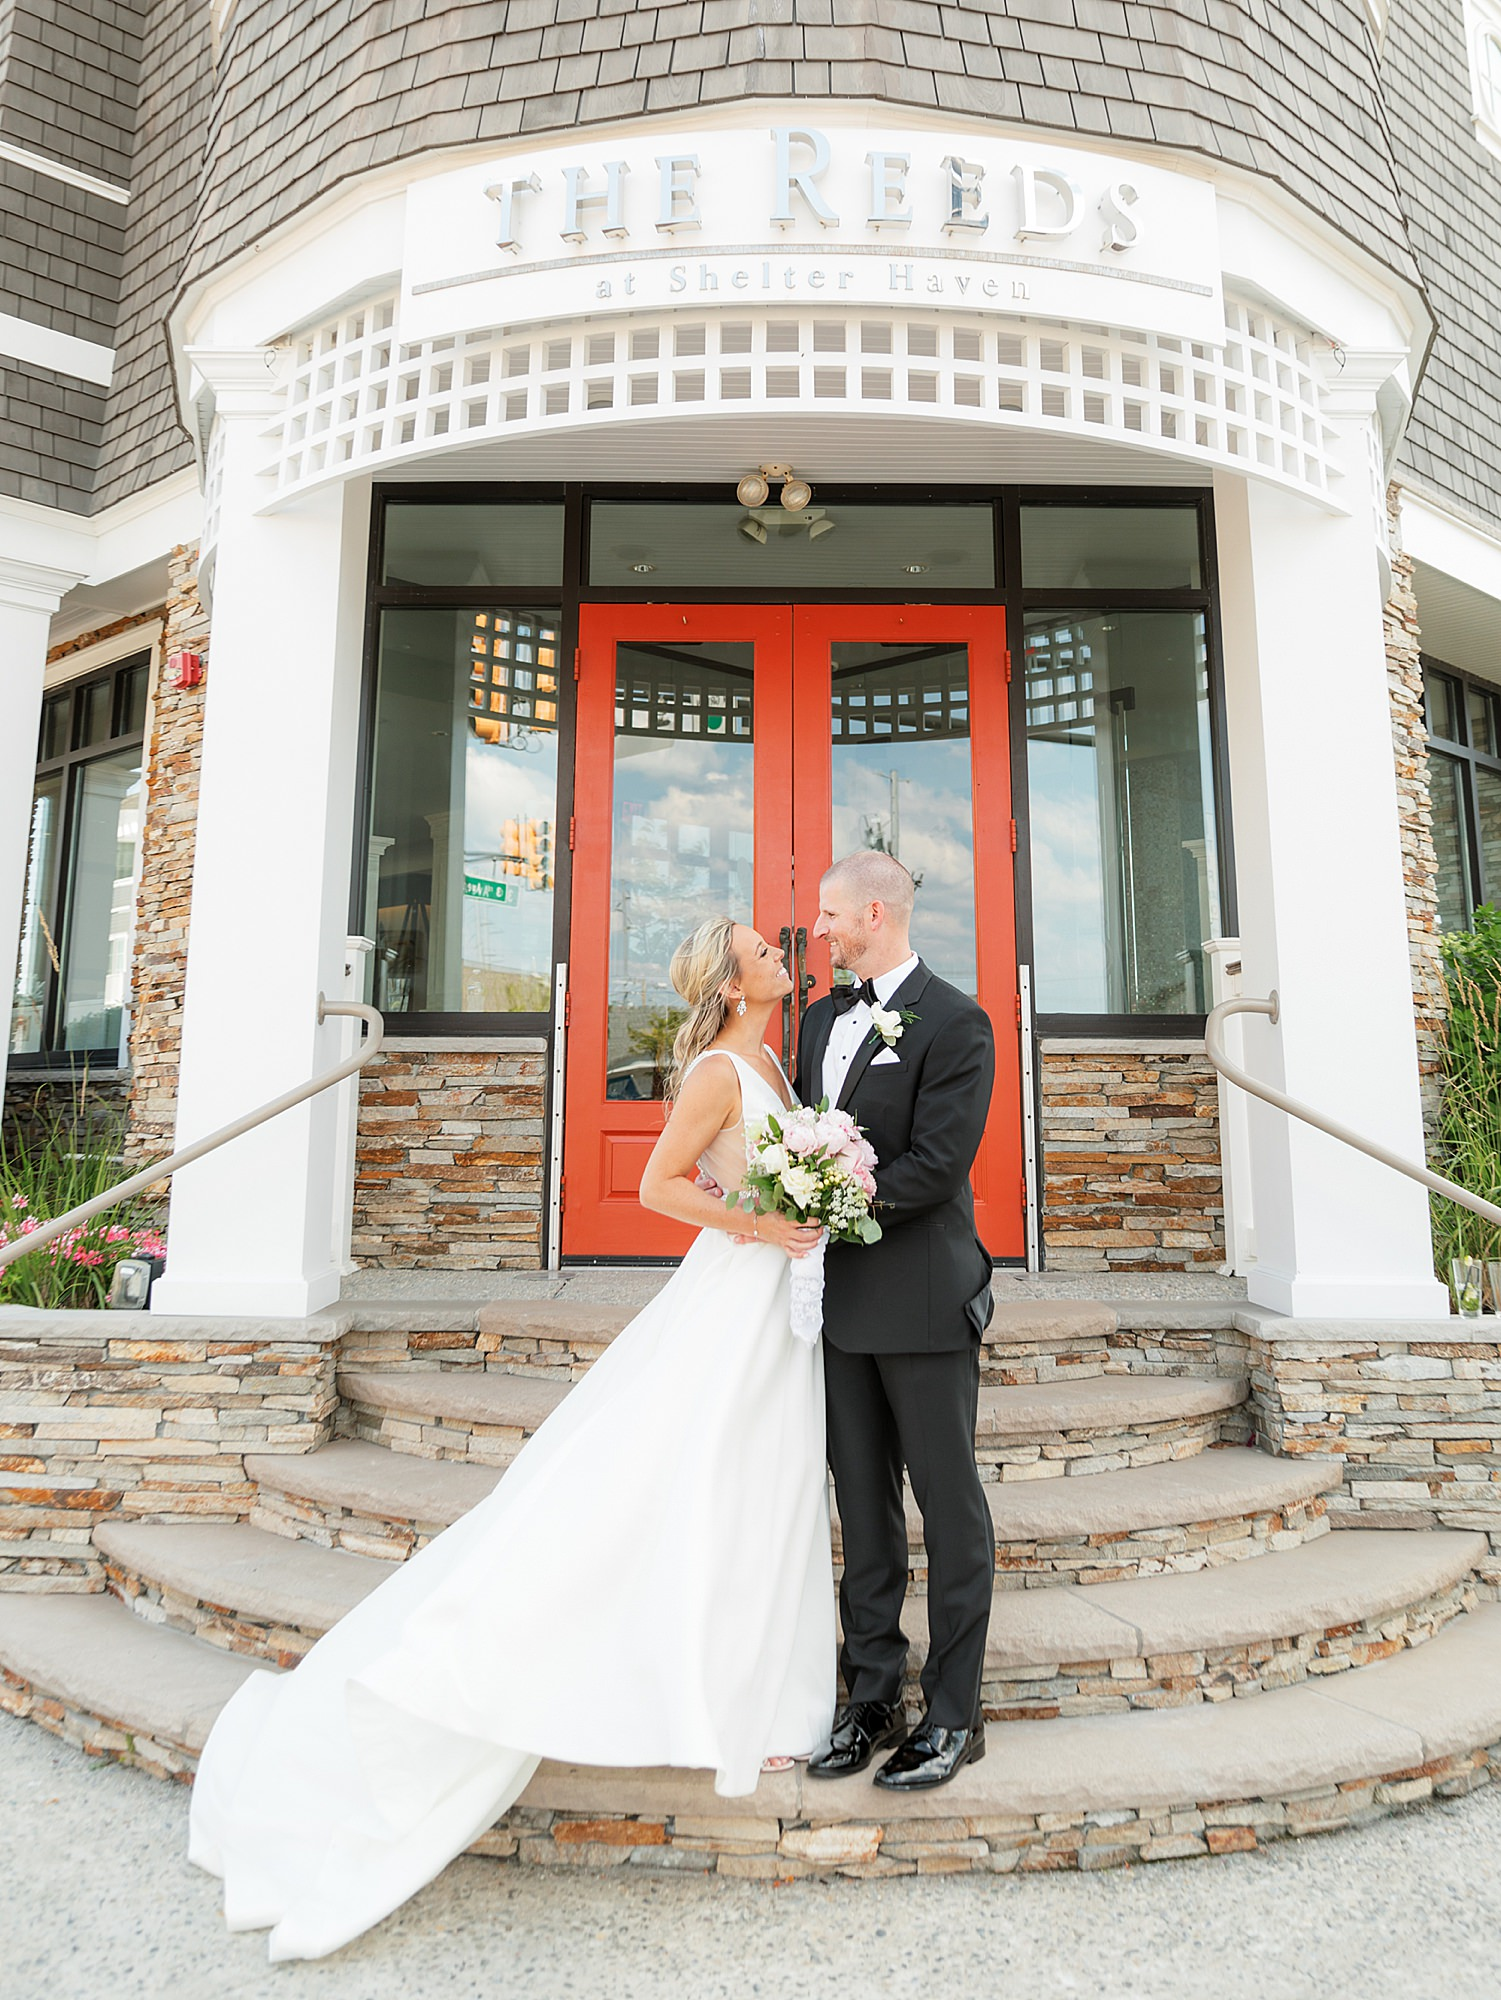 Natural and Vibrant Wedding Photography at the Reeds in Stone Harbor NJ by Magdalena Studios 0036